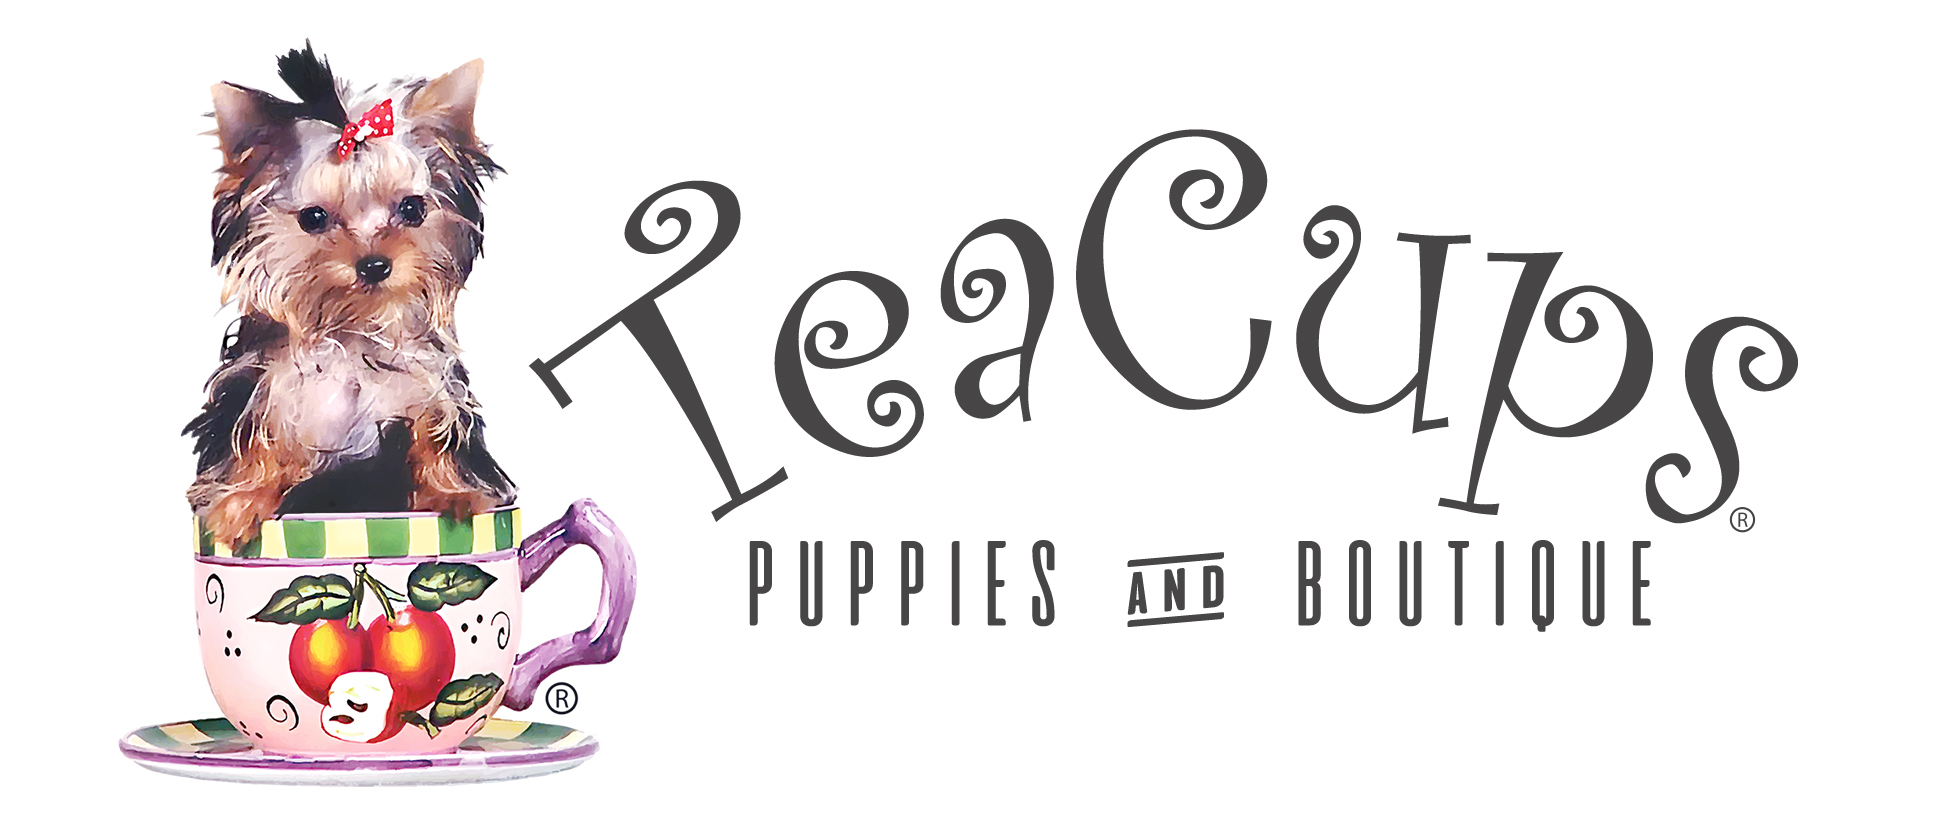 Teacups, Puppies & Boutique